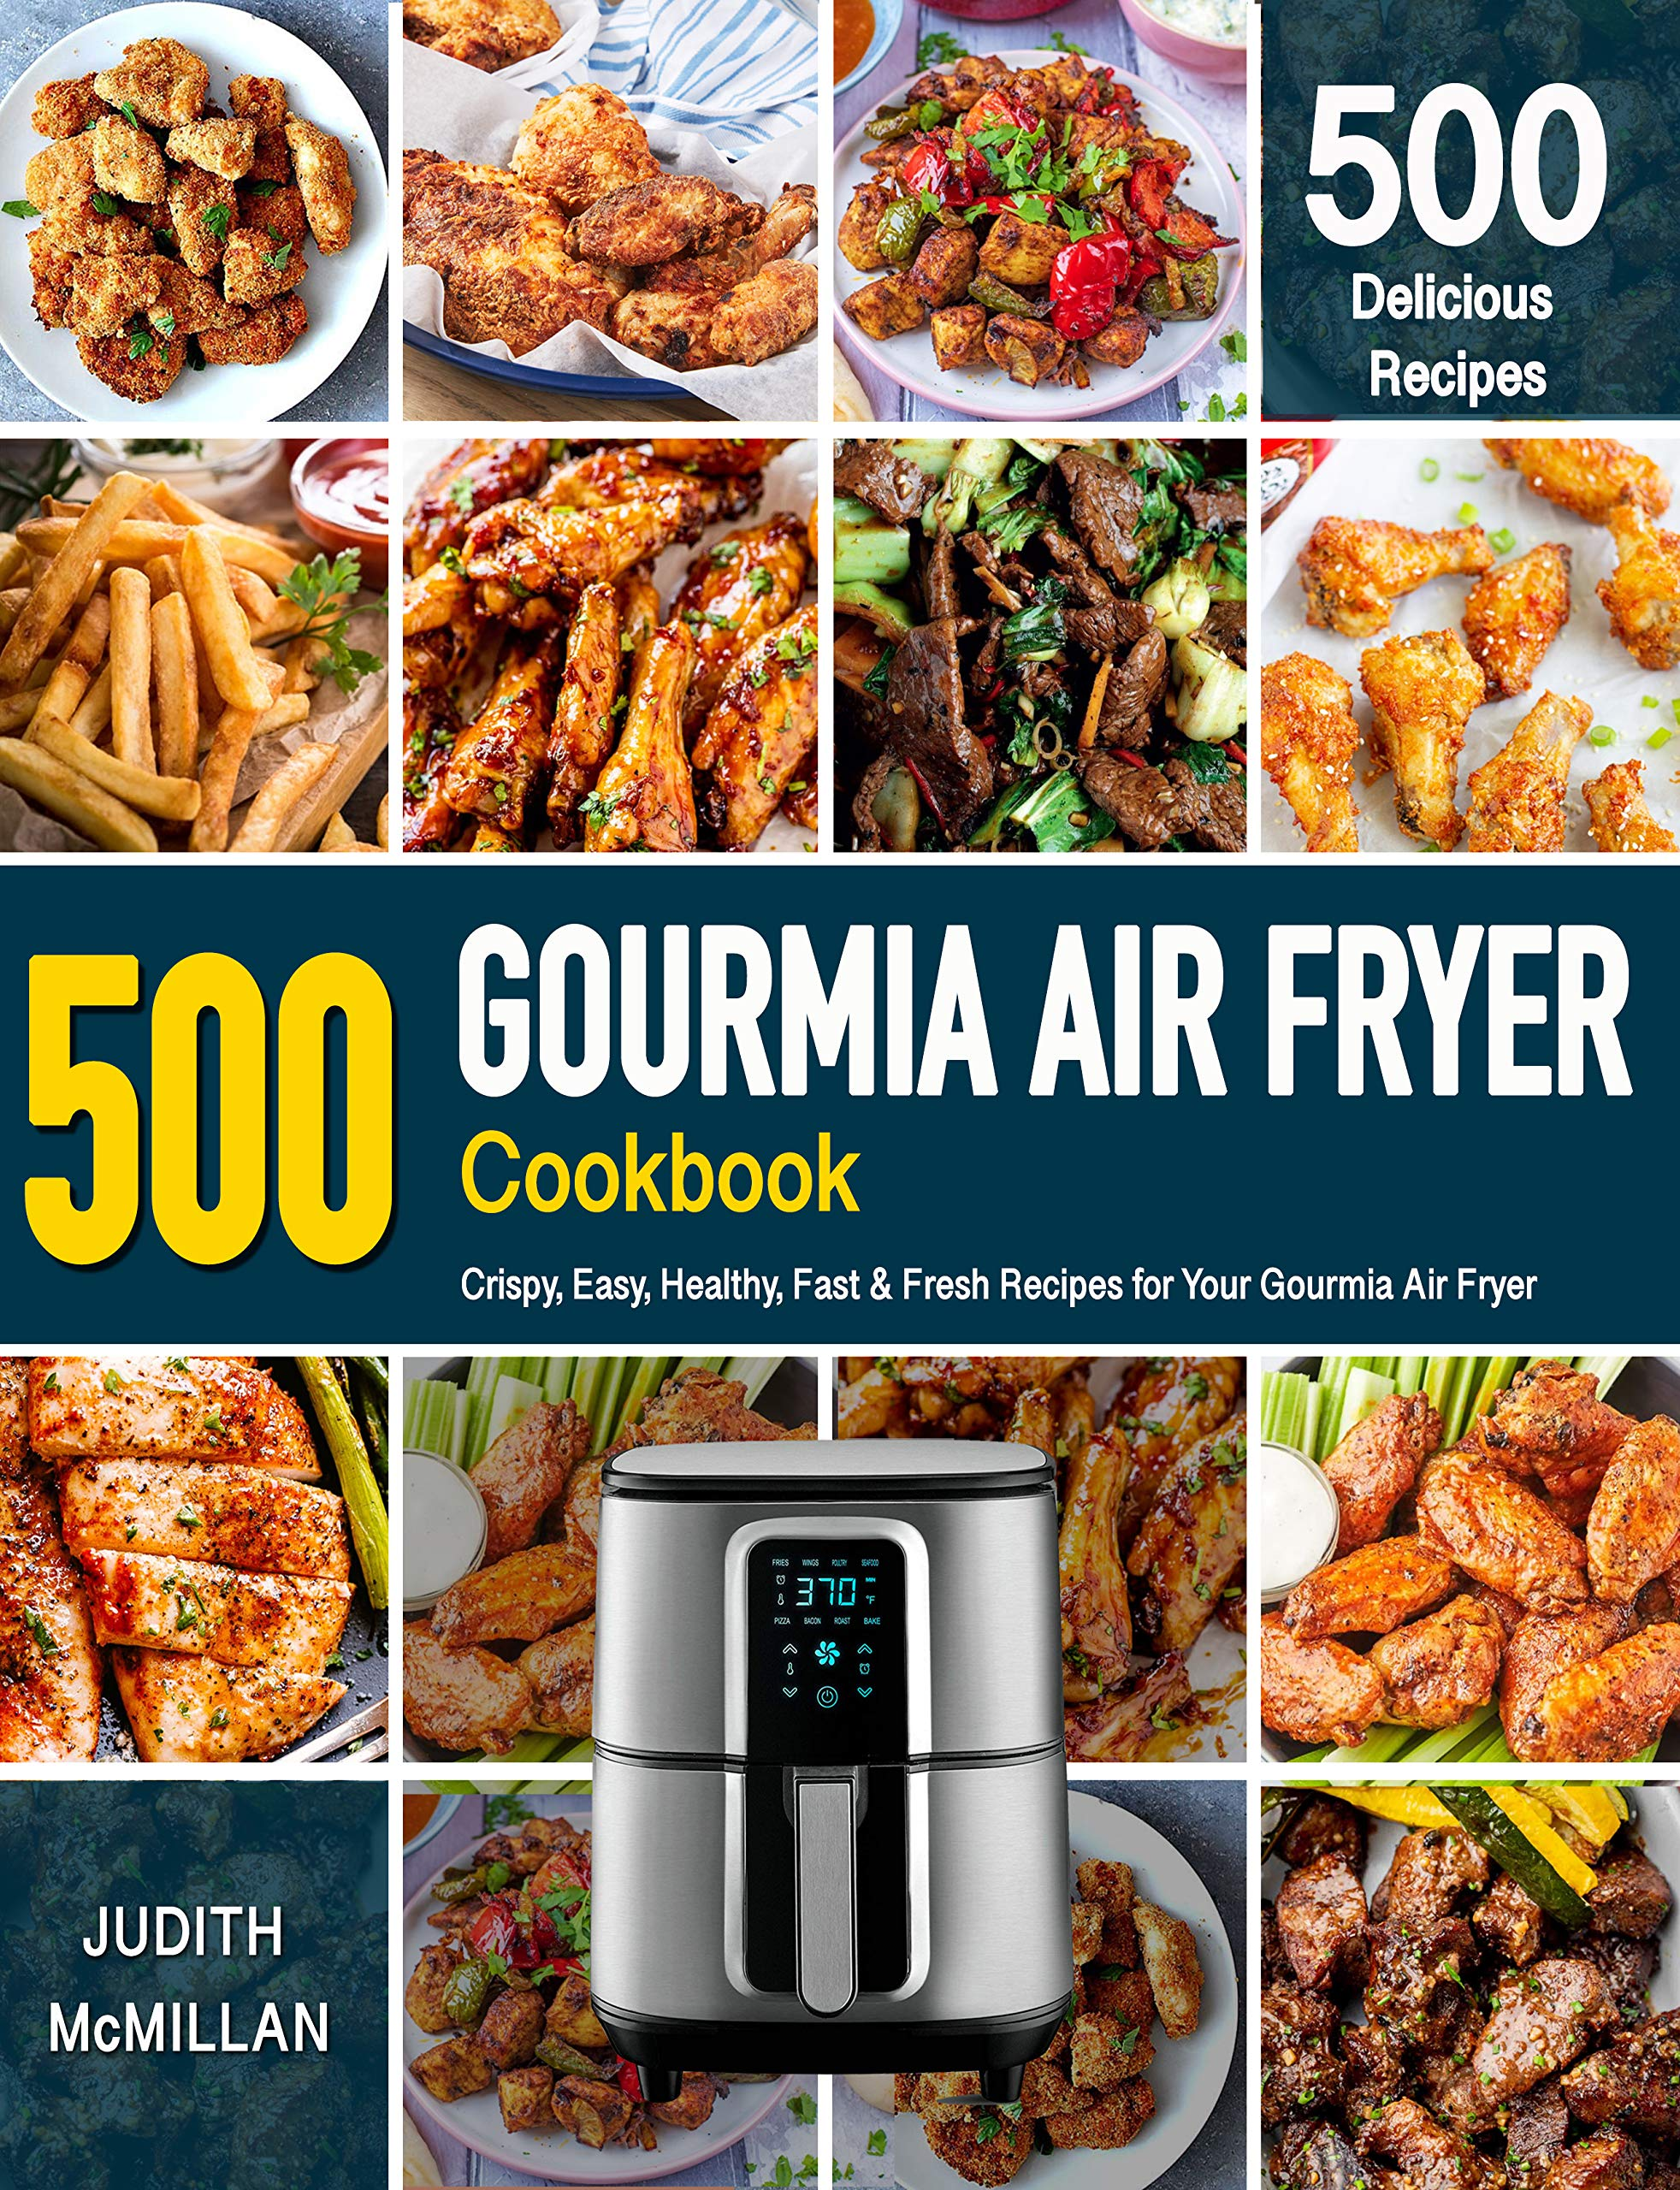 GOURMIA AIR FRYER Cookbook: 500 Crispy, Easy, Healthy, Fast & Fresh Recipes For Your Gourmia Air Fryer (Recipe Book)